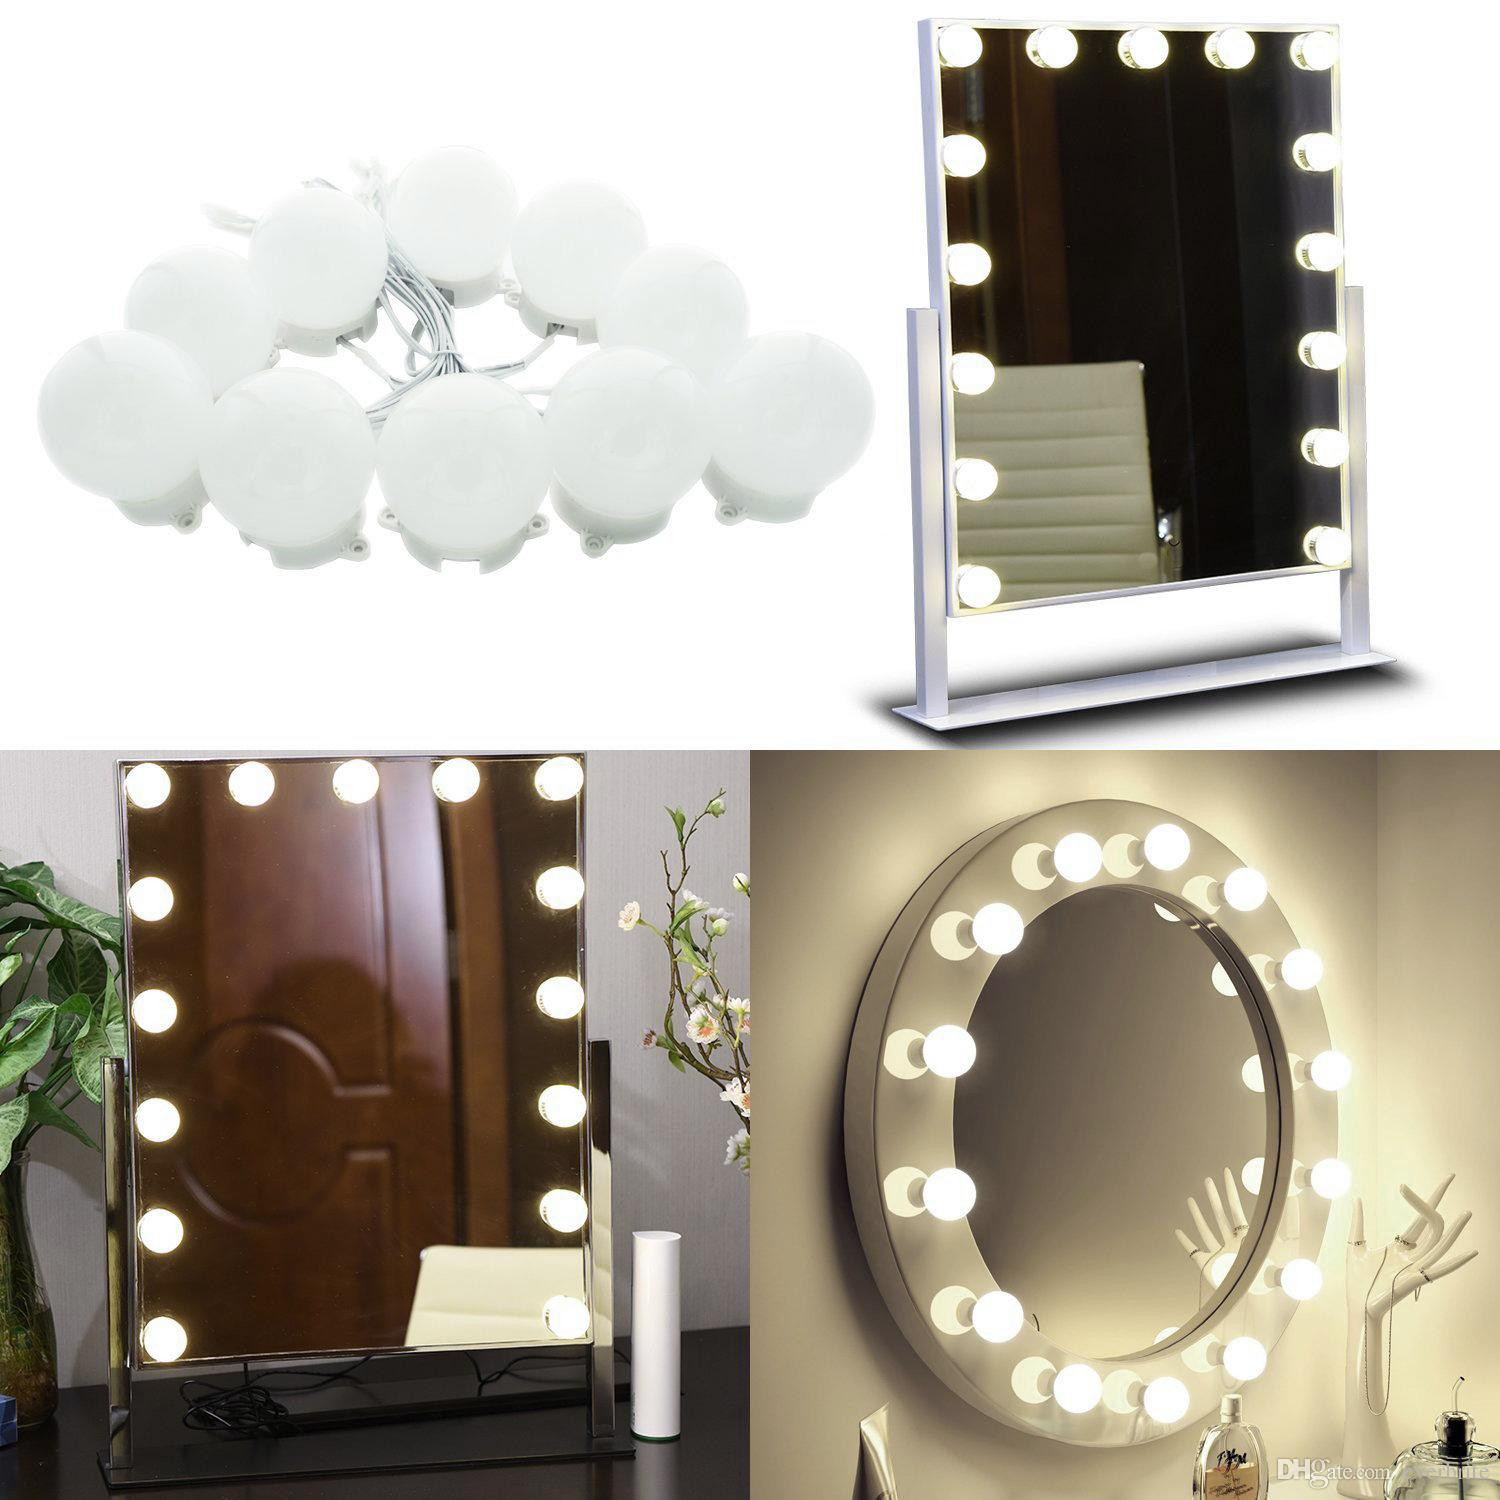 2018 Hollywood Vanity Lights For Big Makeup Table Set In Dressing Room,  Linkable Mirror Light Bulb For Makeup, Cosmetic10 Bulbs Natural White From  Everbrite ...